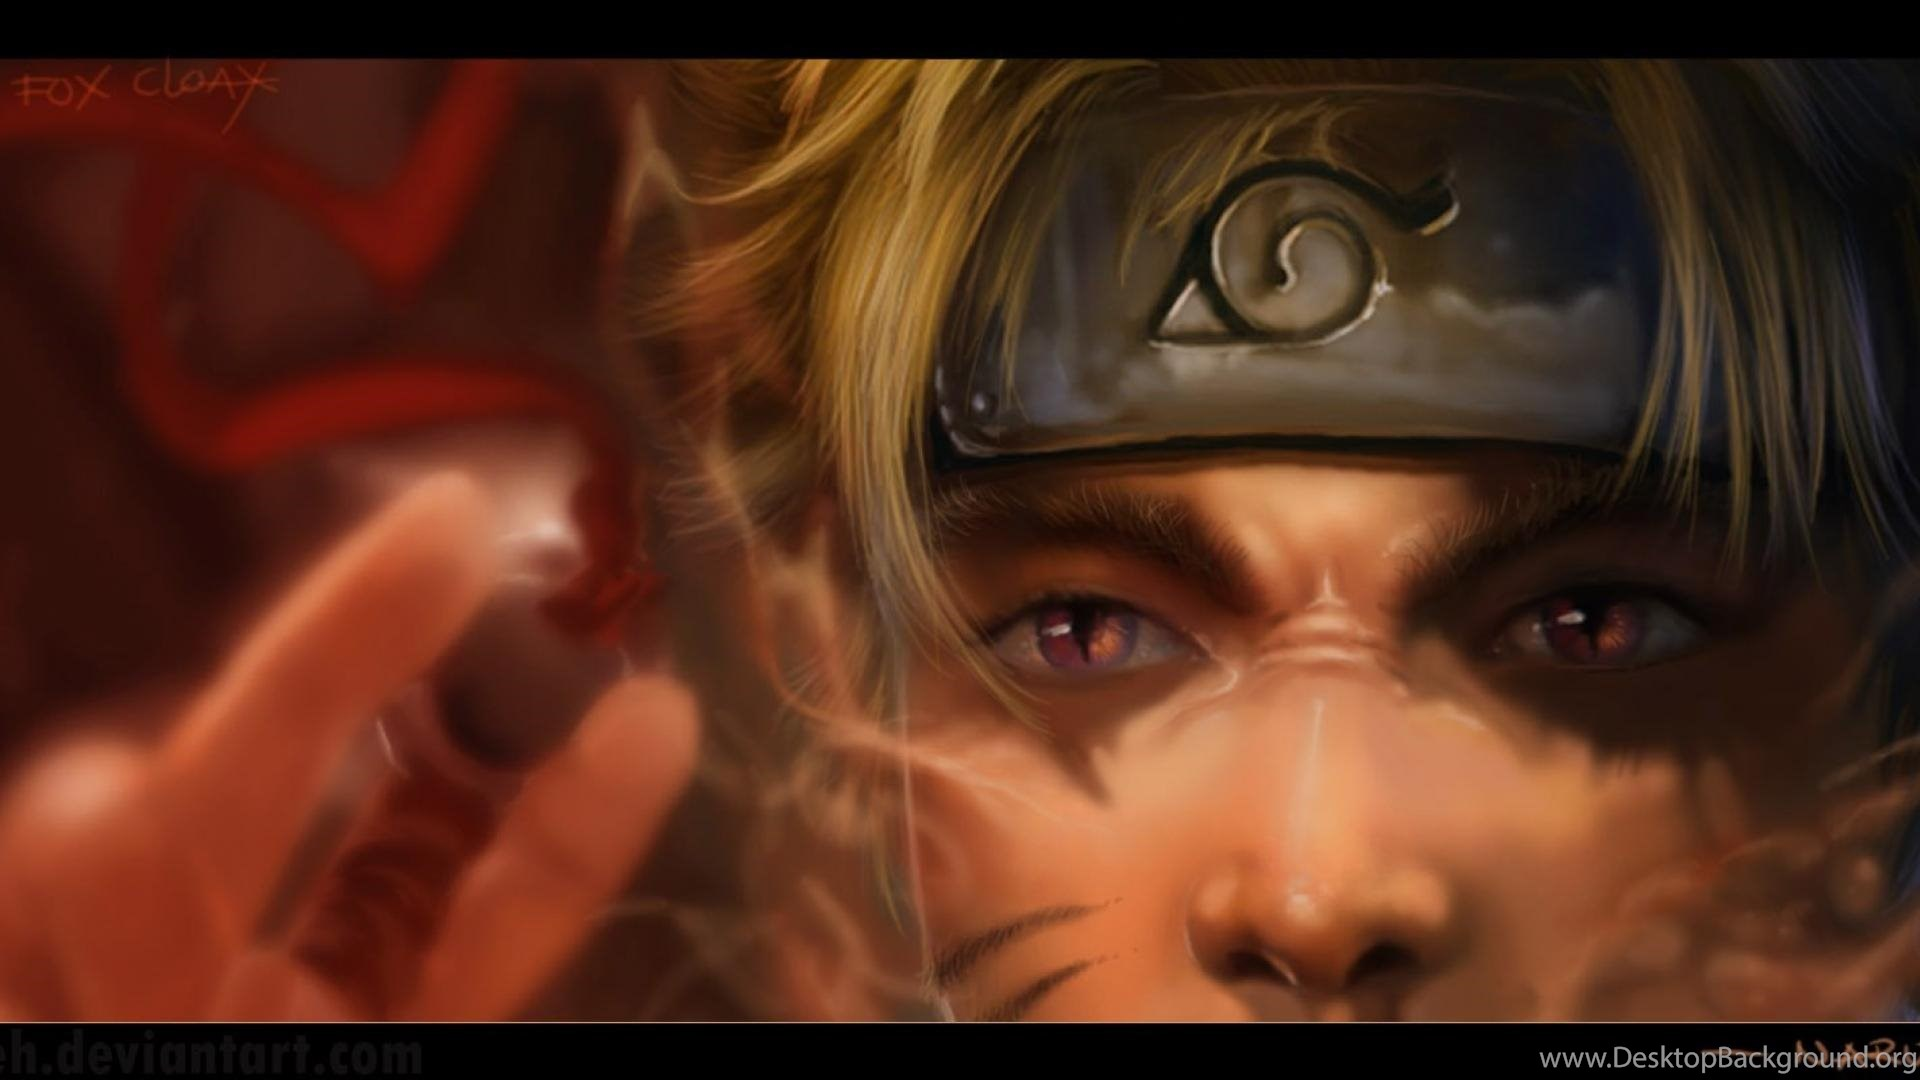 Naruto Shippuden Live Action Face Hd Wallpapers Desktop Background